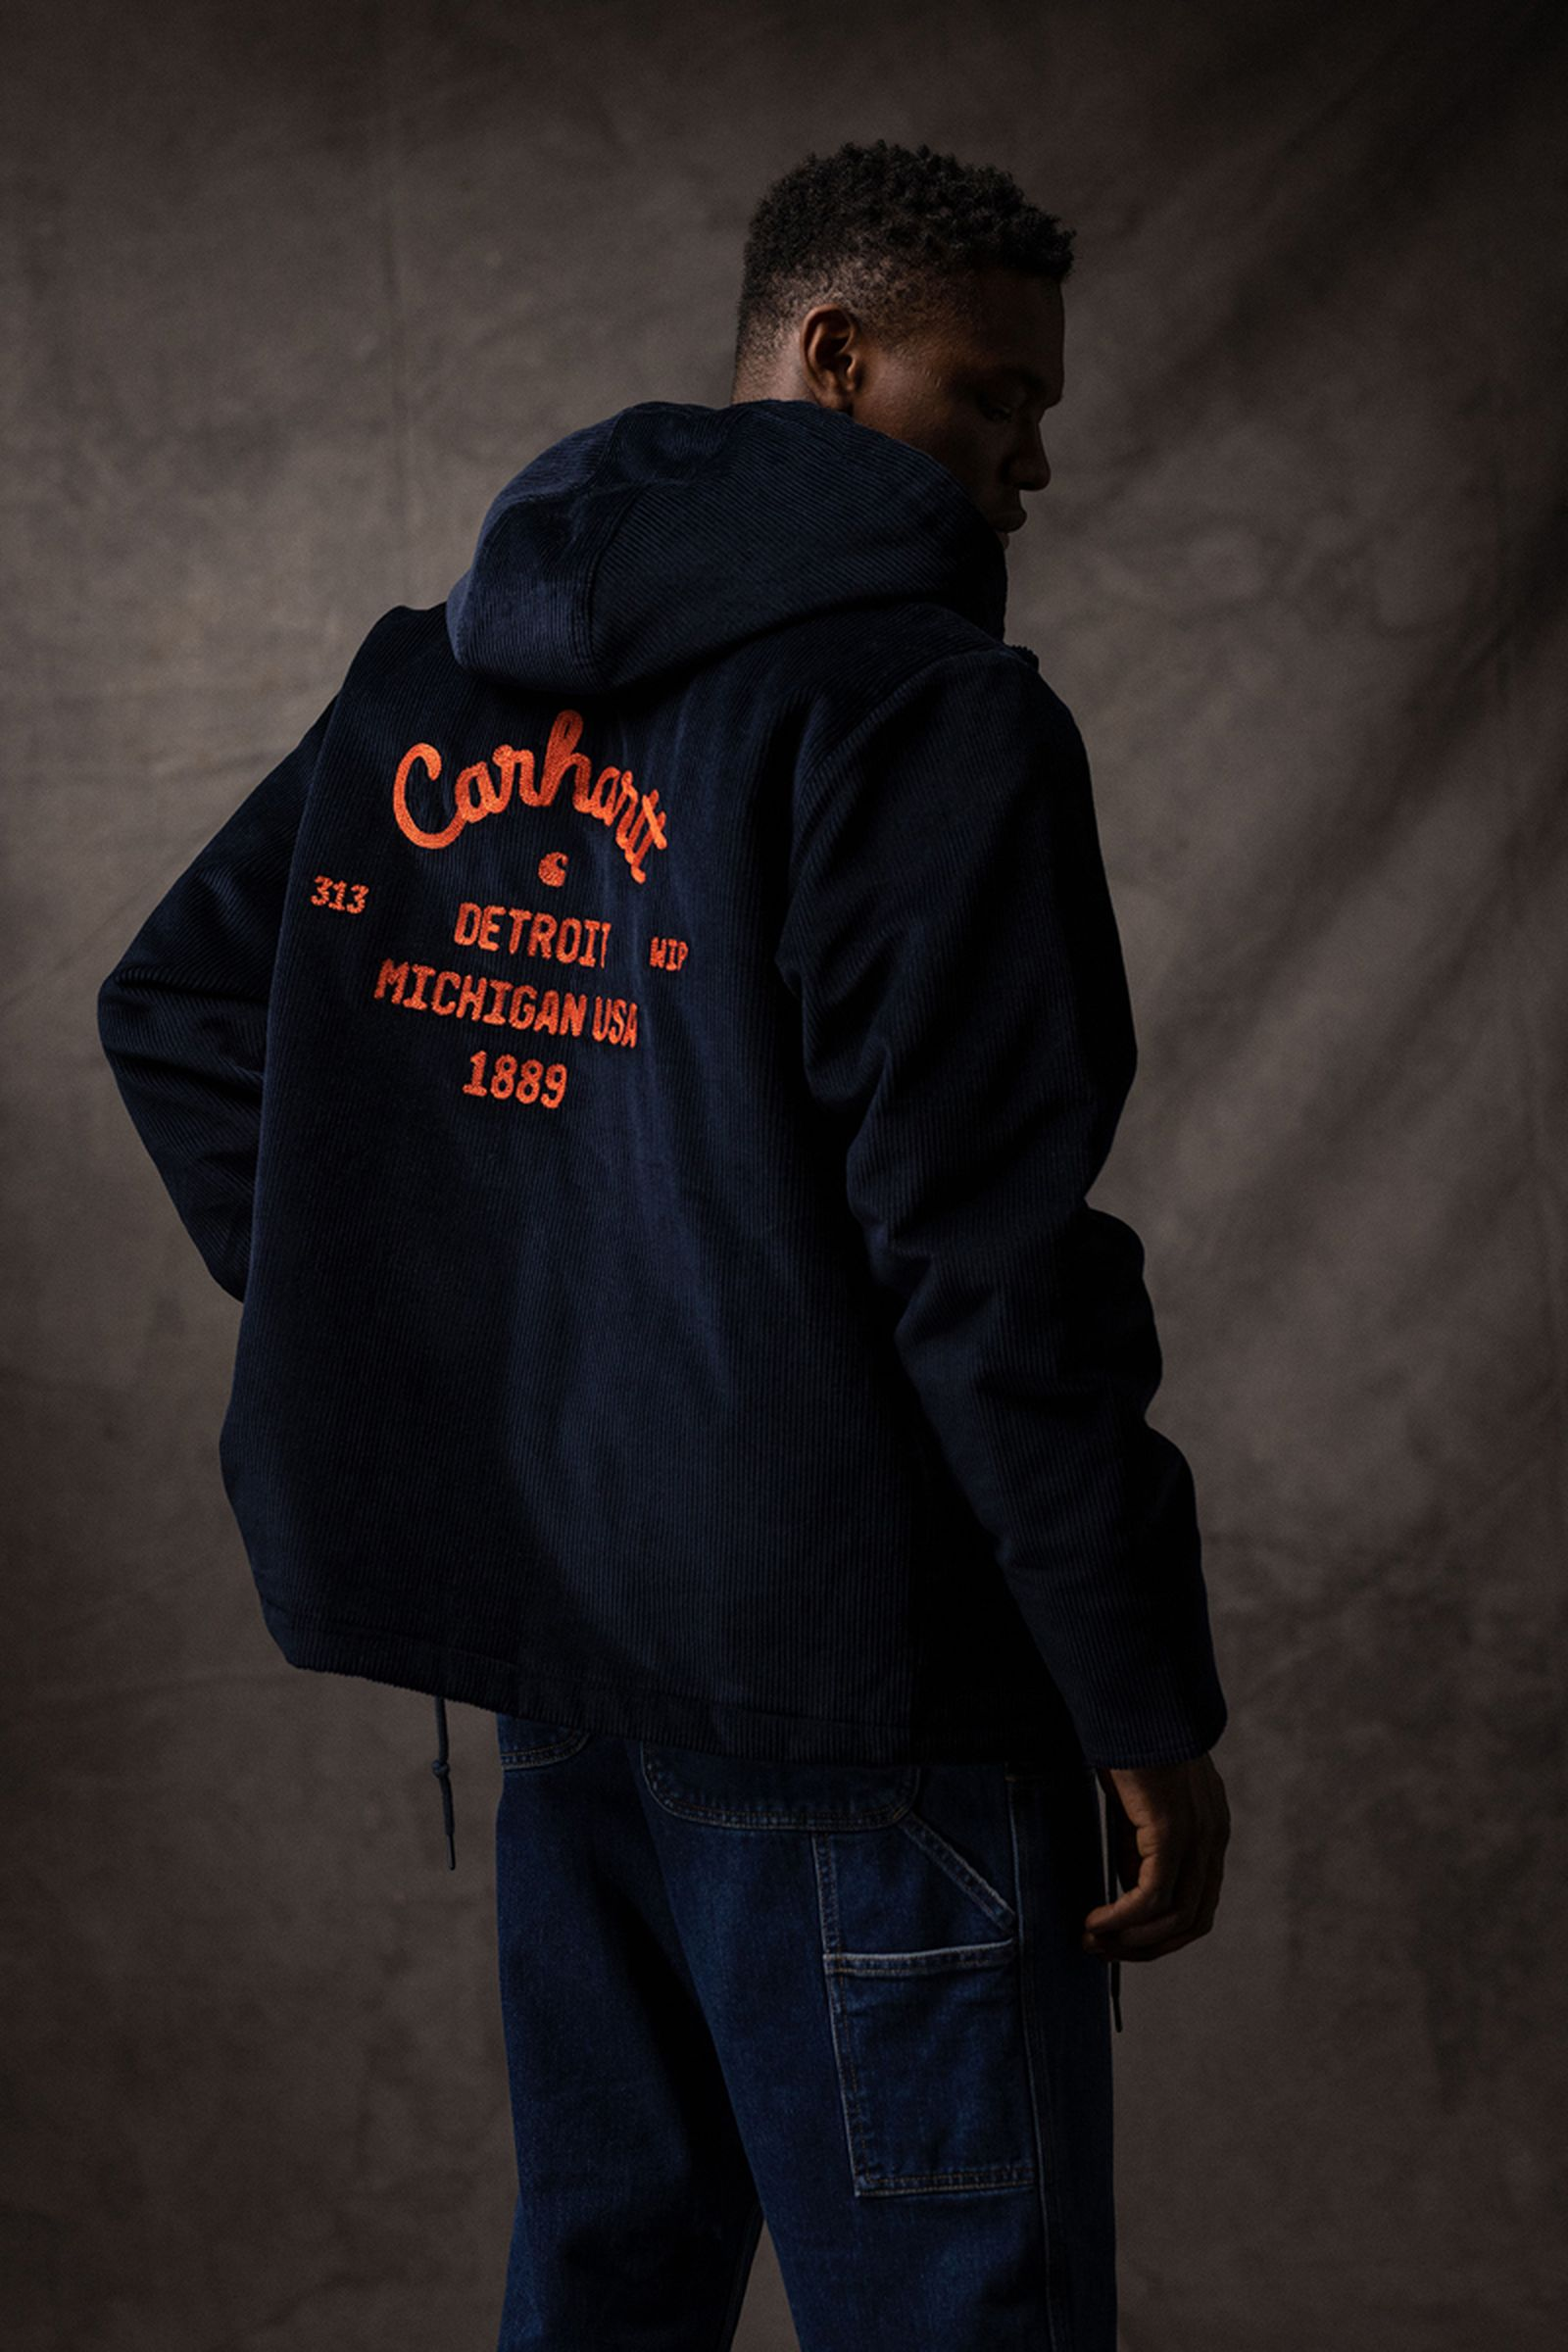 carhartt-wip-fall-winter-2021-collection- (5)